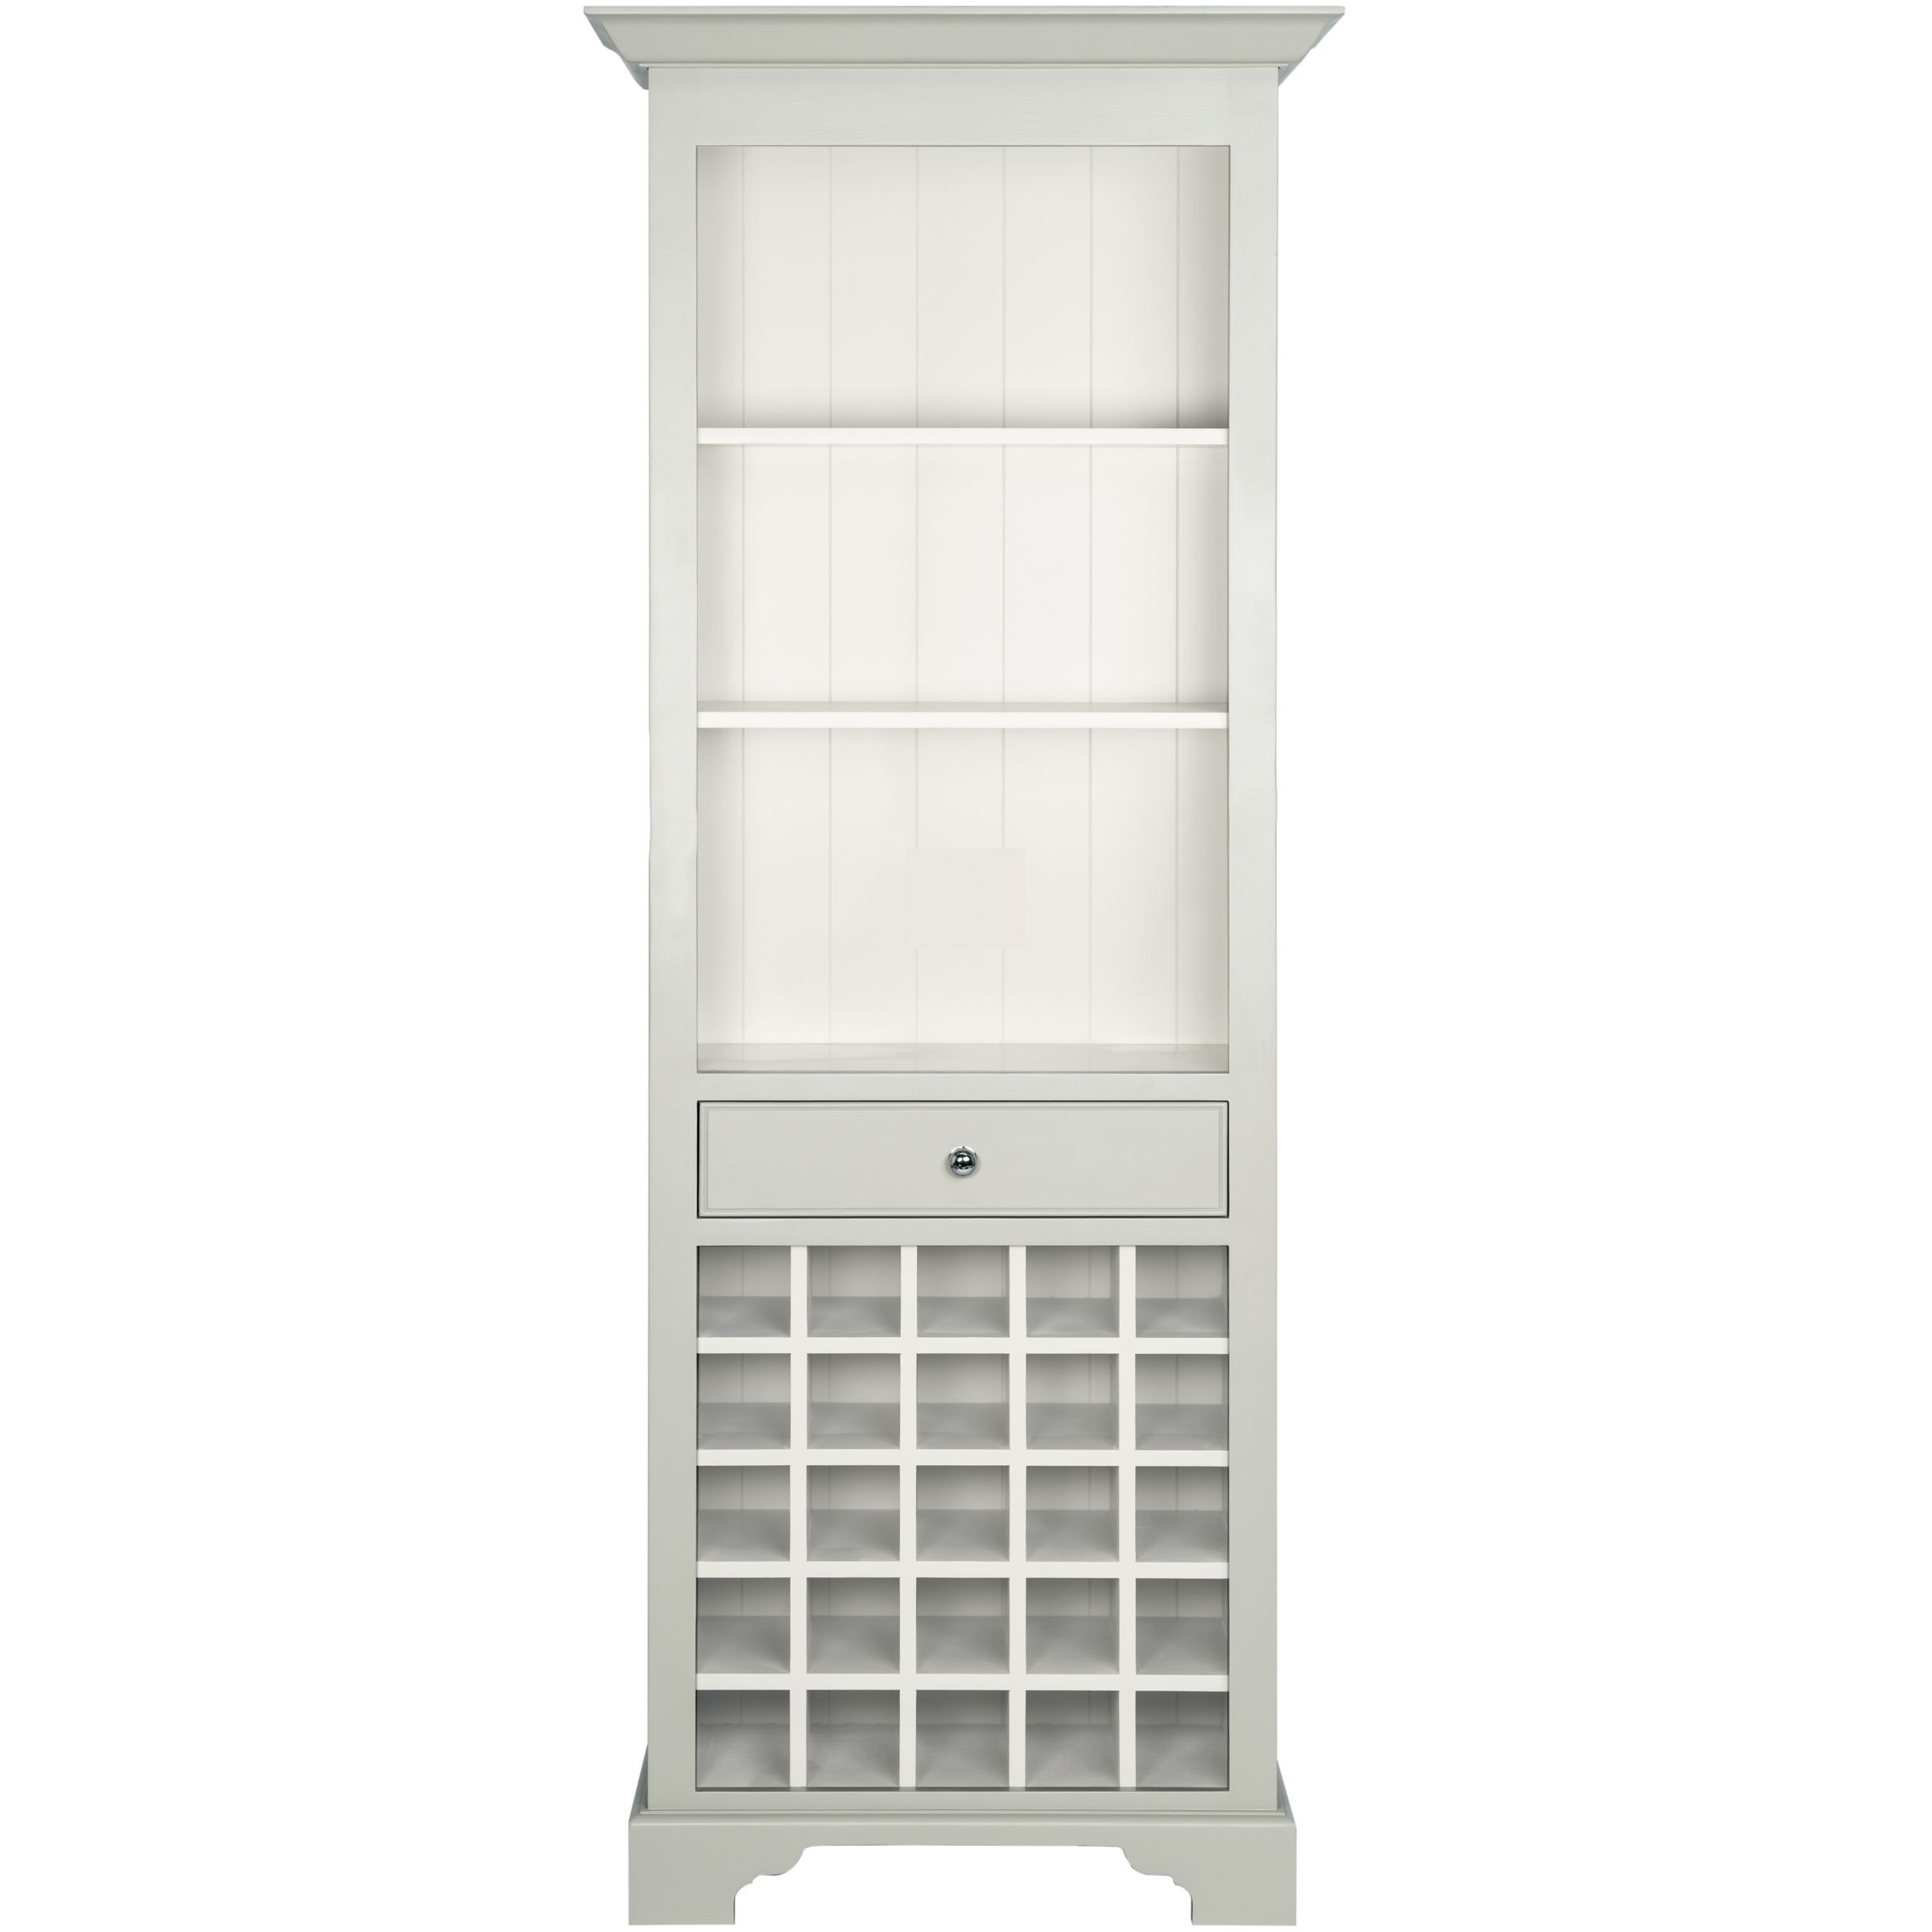 Buy Cheap Cabinet Wine Rack Compare Furniture Prices For